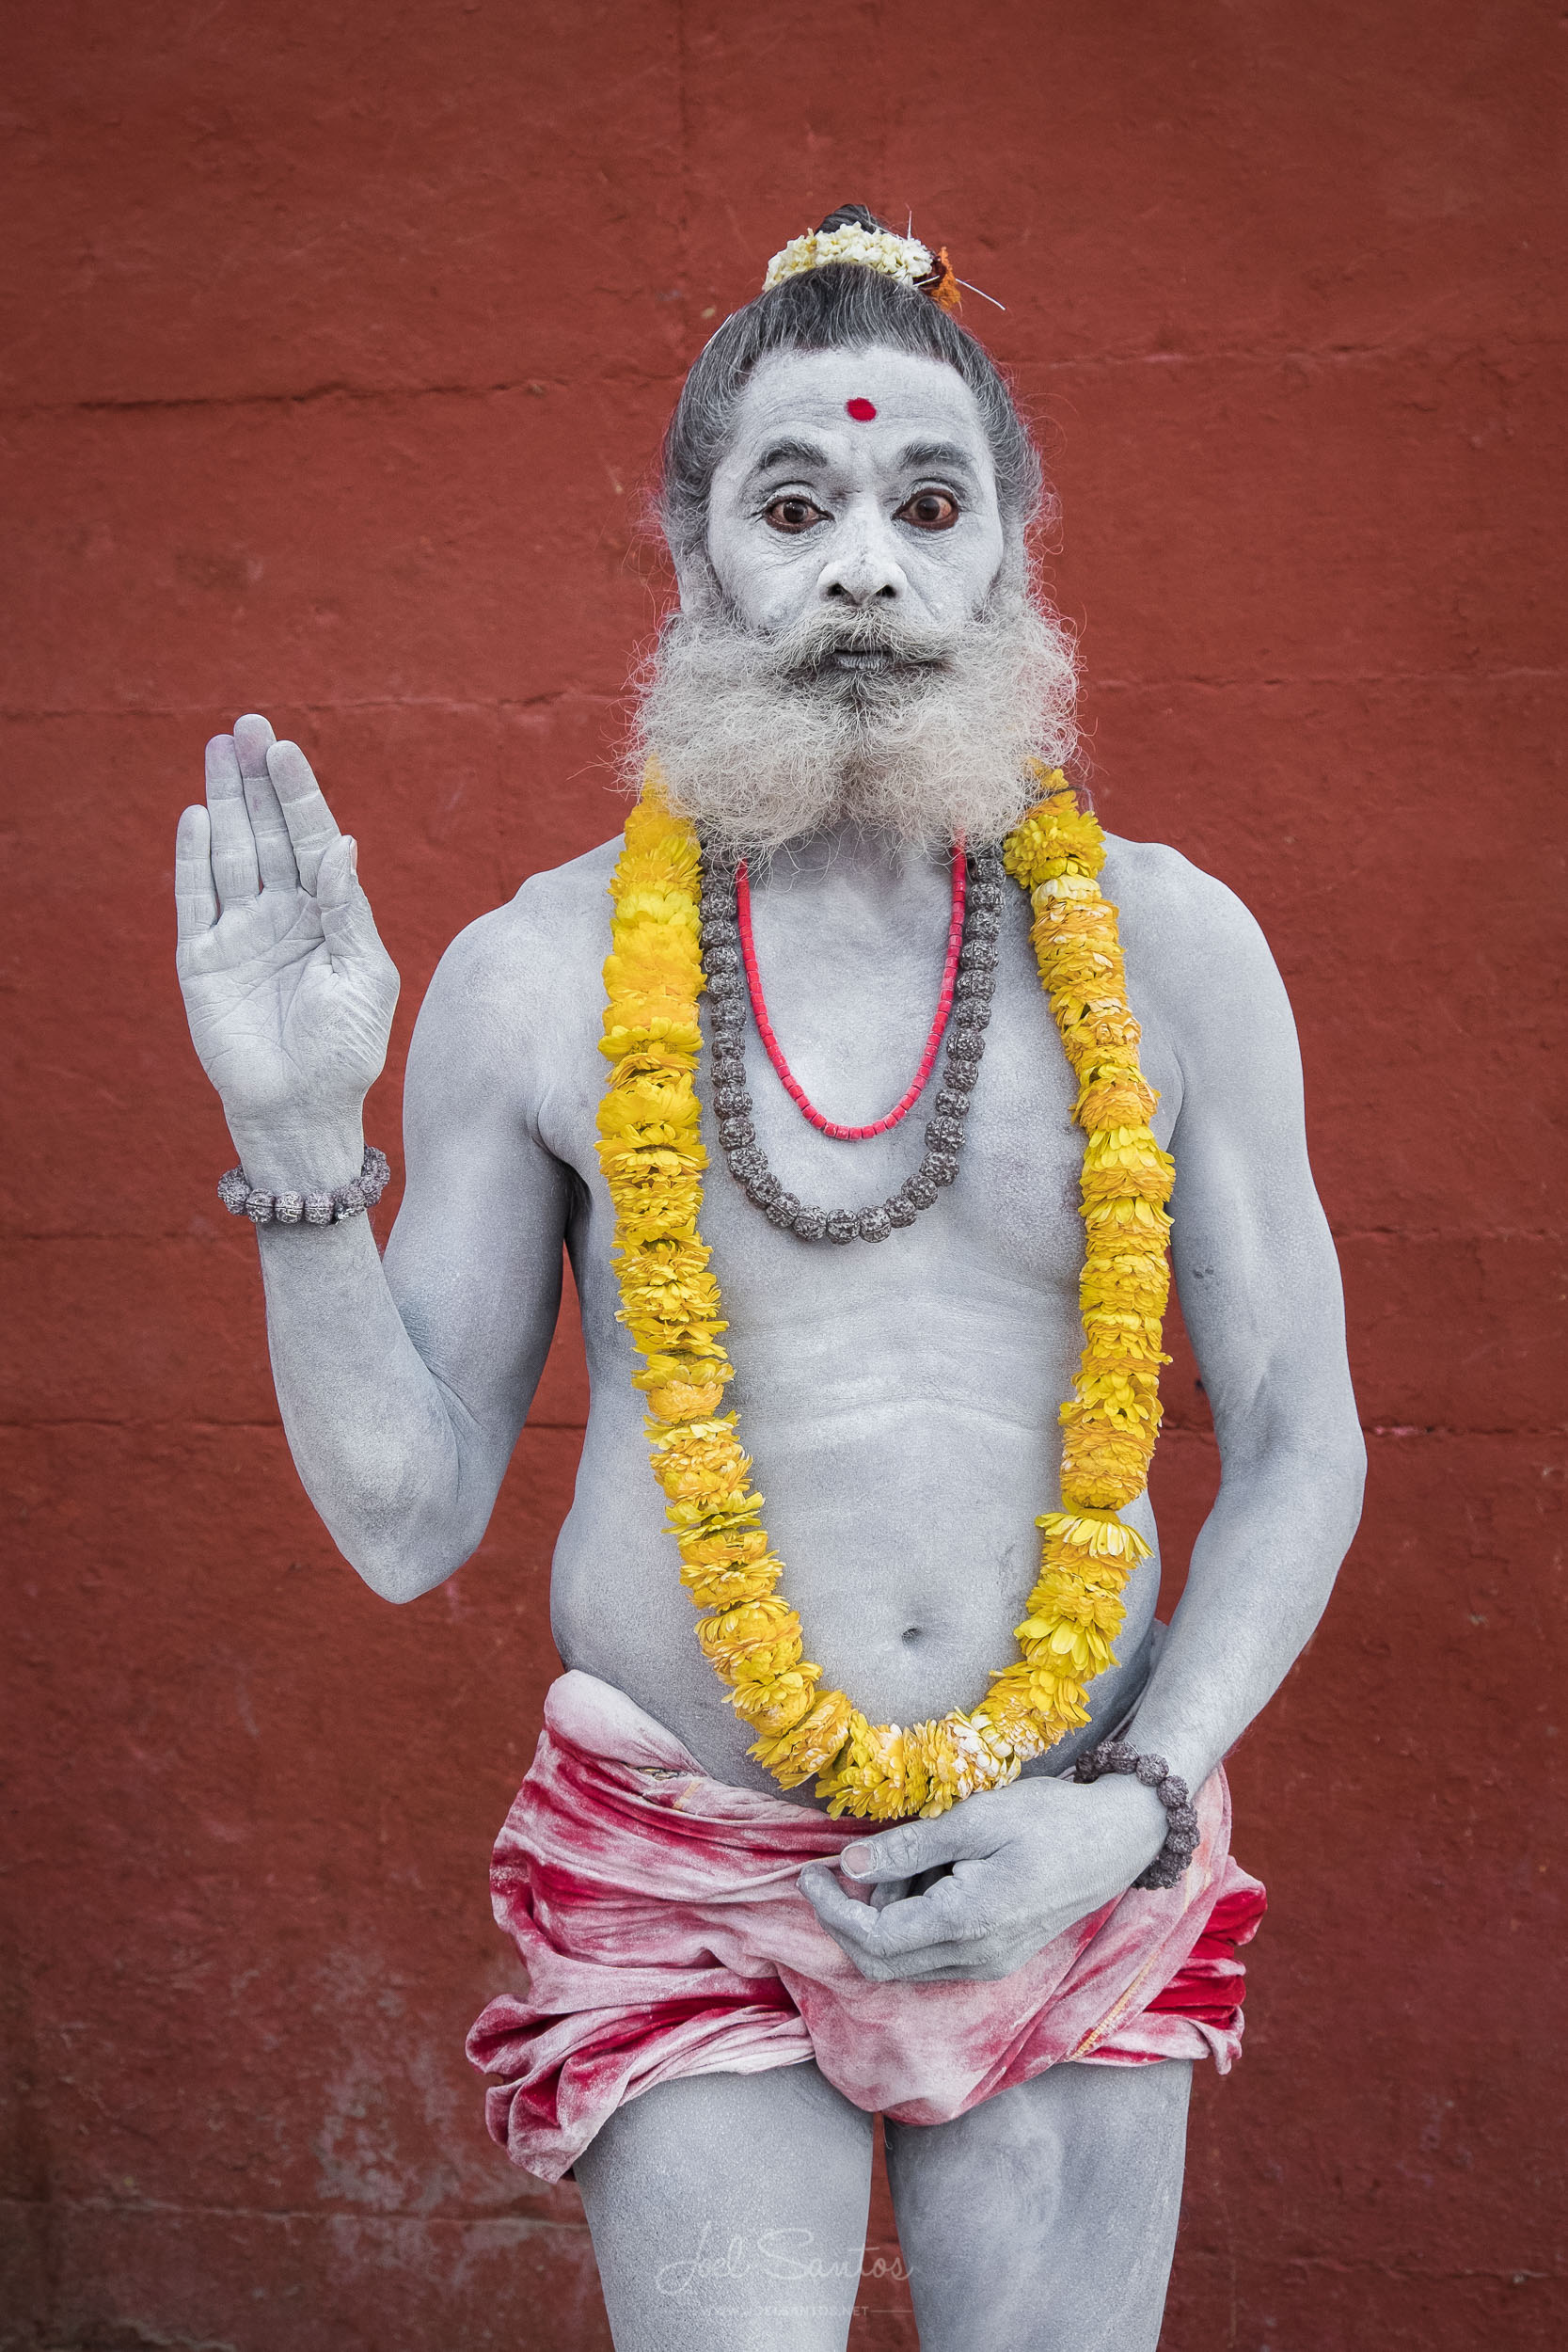 Sadhu (Holy man), Varanasi, India